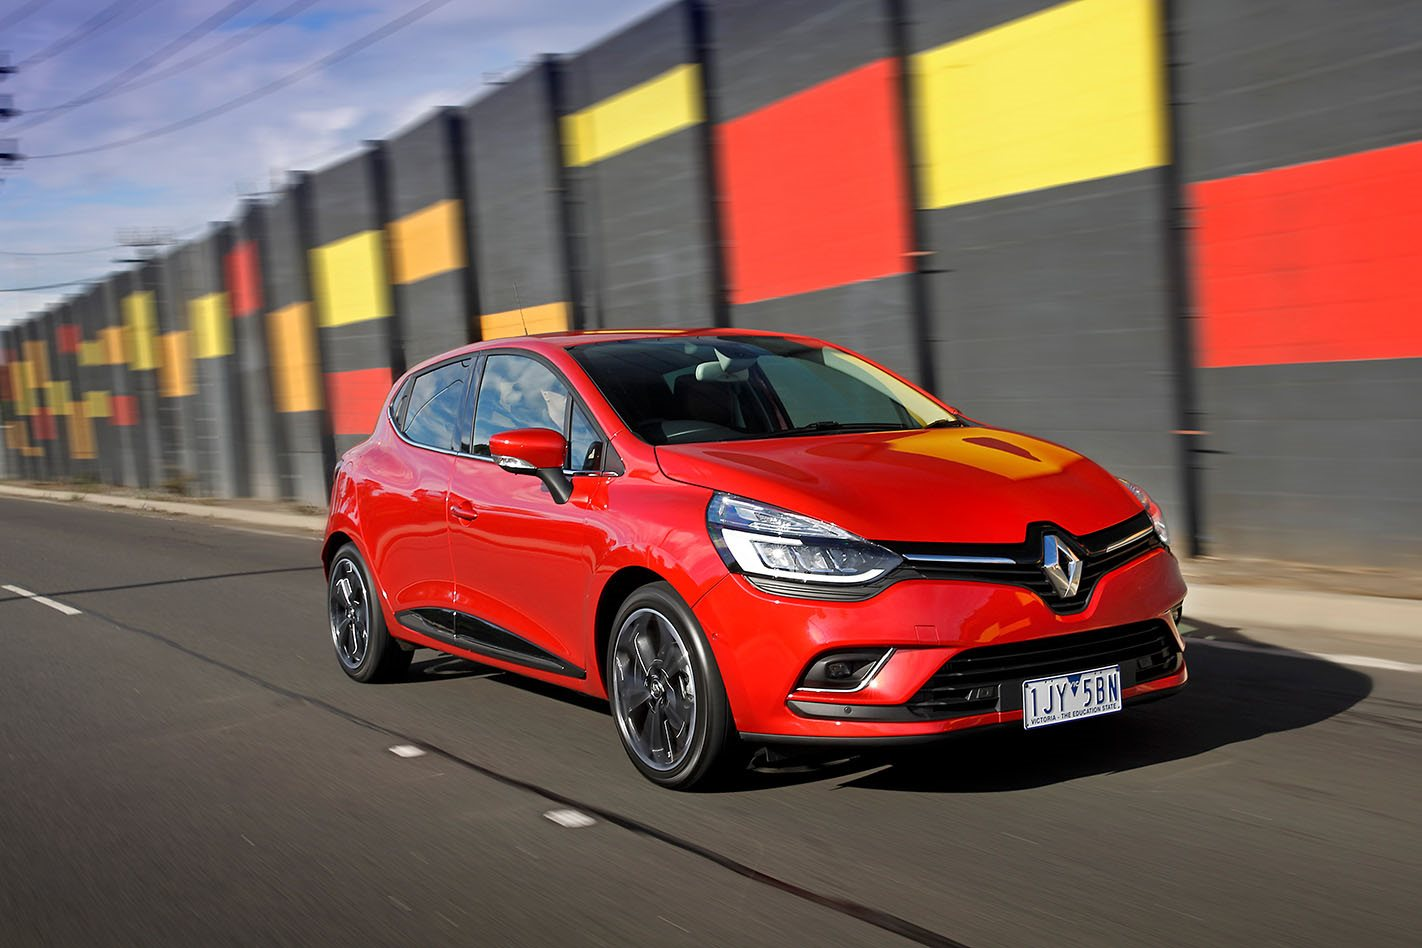 renault clio review price features. Black Bedroom Furniture Sets. Home Design Ideas